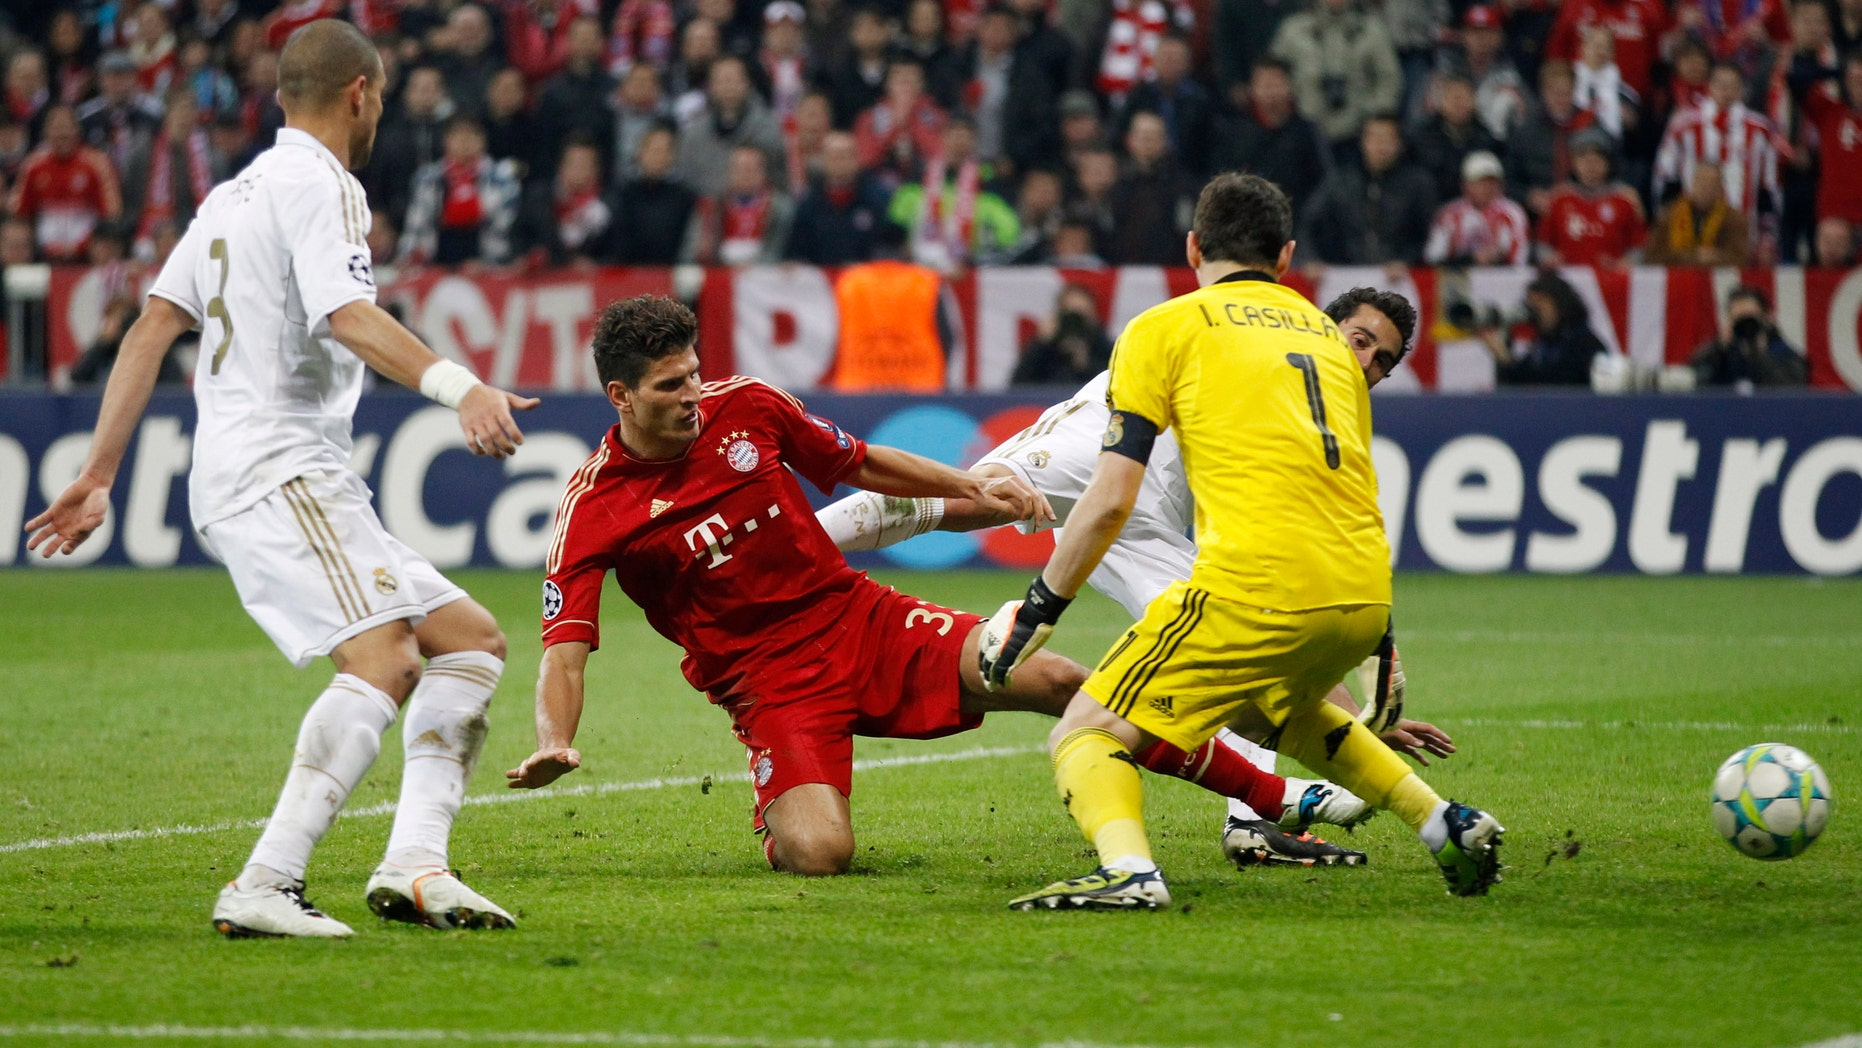 Bayern's Mario Gomez scores his side's 2nd goal past Madrid goalkeeper Iker Casillas, right, during the Champions League first leg semifinal soccer match between Bayern Munich and Real Madrid in Munich, southern Germany, Tuesday, April 17, 2012. (AP Photo/Matthias Schrader)